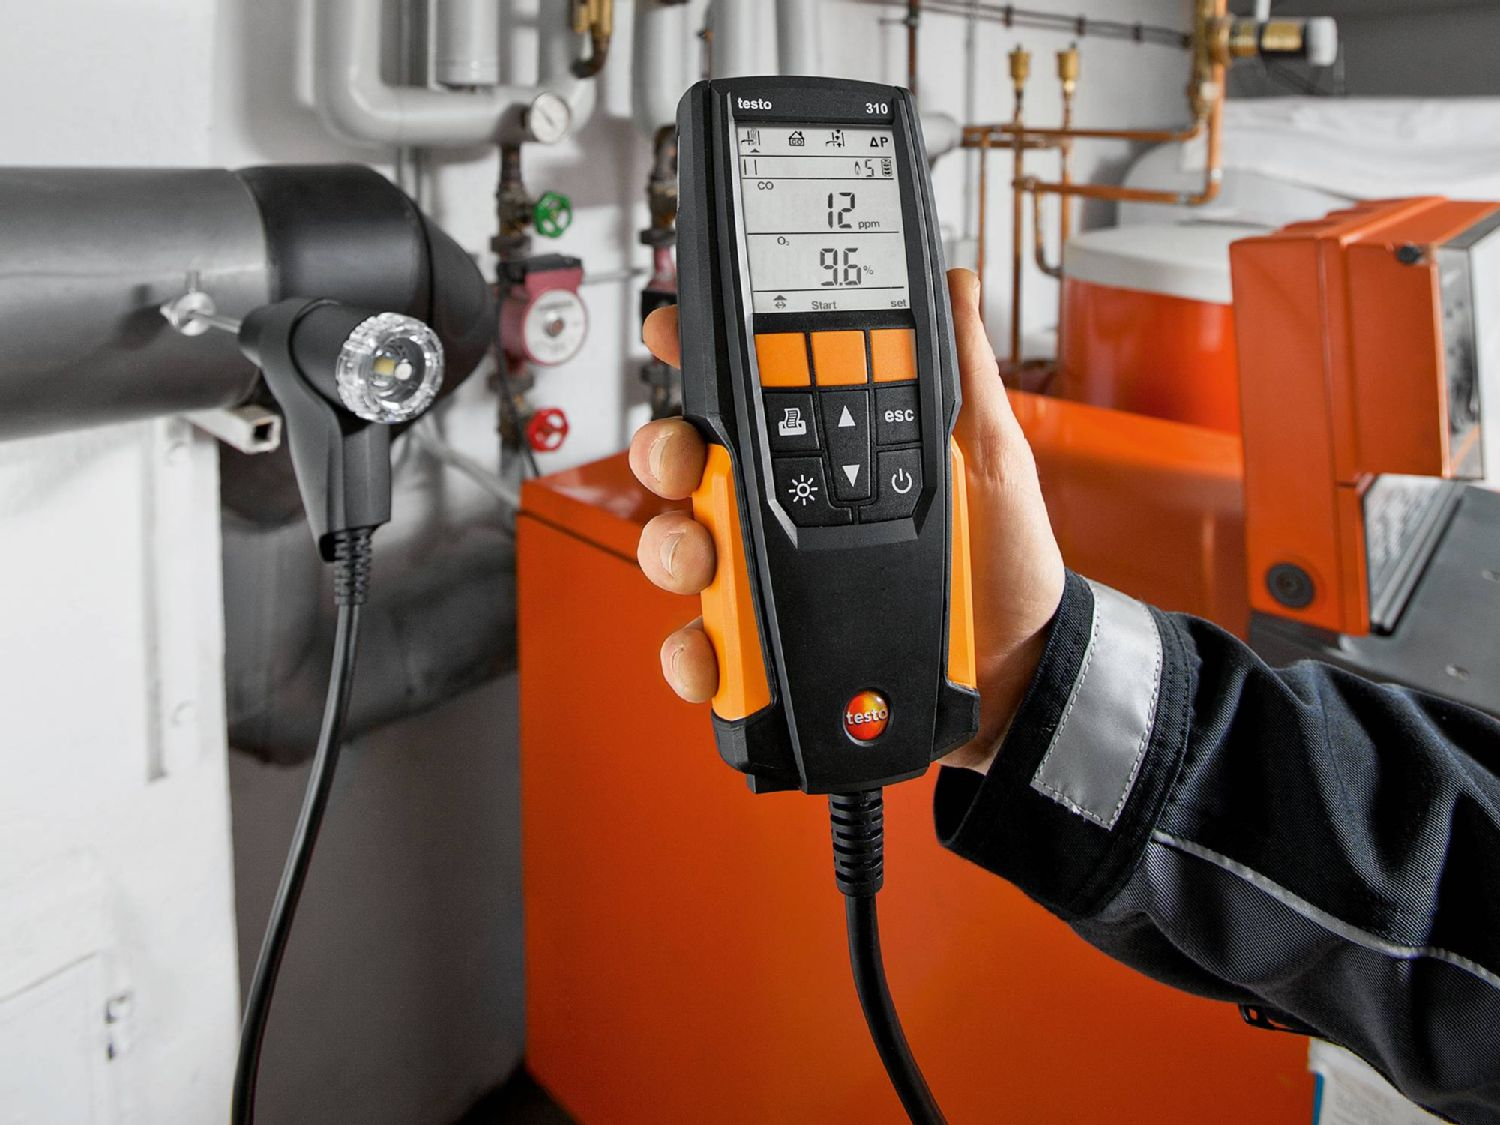 Flue gas analyzer testo 310